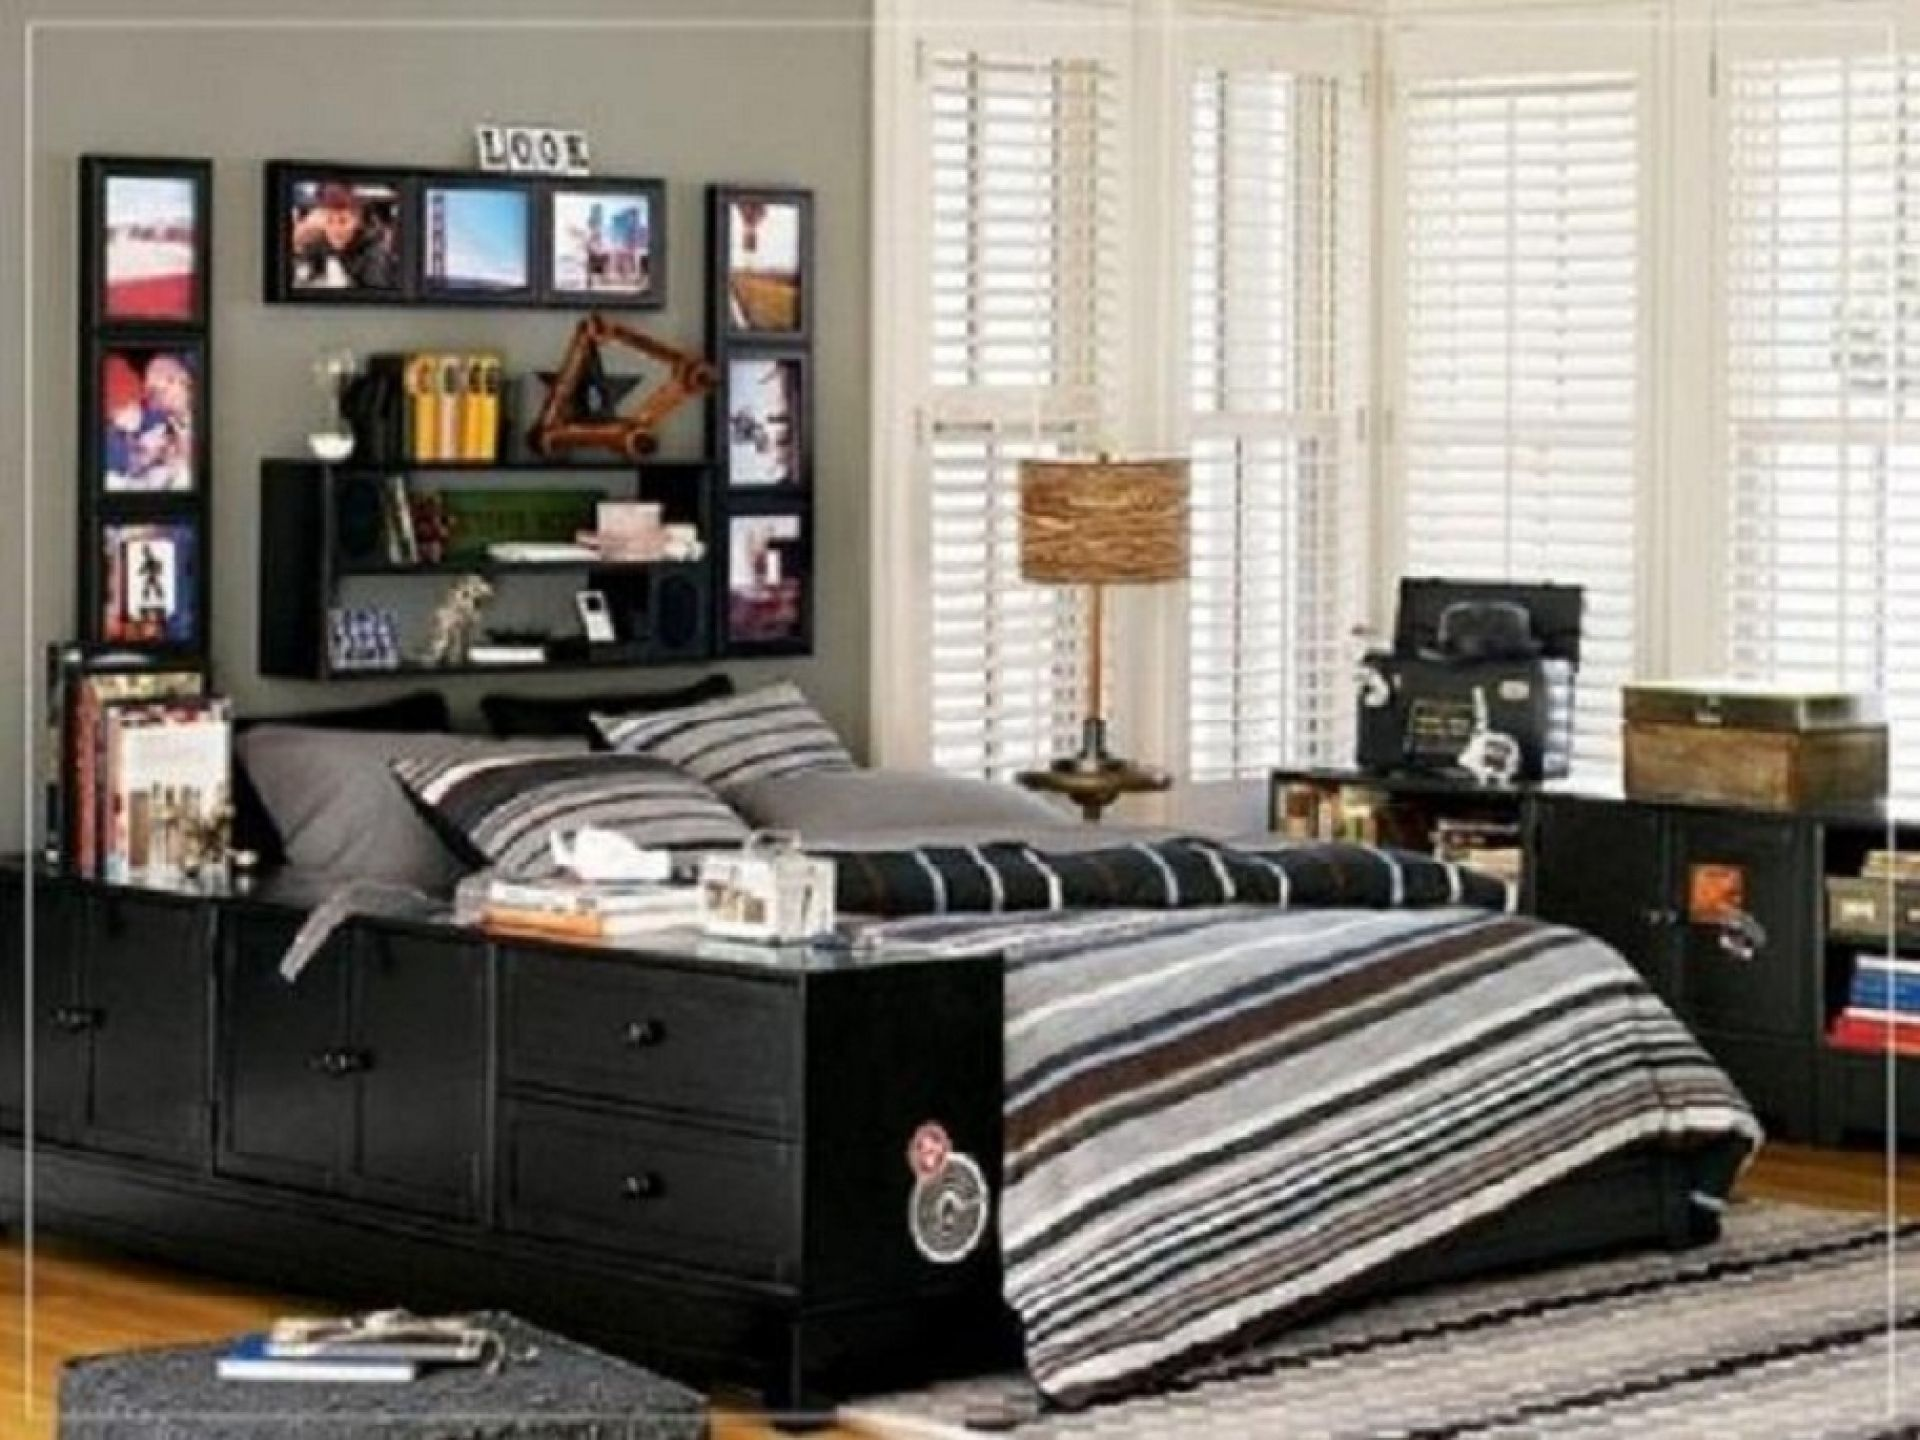 Teens Room, Black White Bed Cover Pillow Carpet Fur Rug Cabinet Shelves  Frame Picture Transparent Curtain Desk Lamp Boys Bedroom Ideas Mattress  Teen Room ...